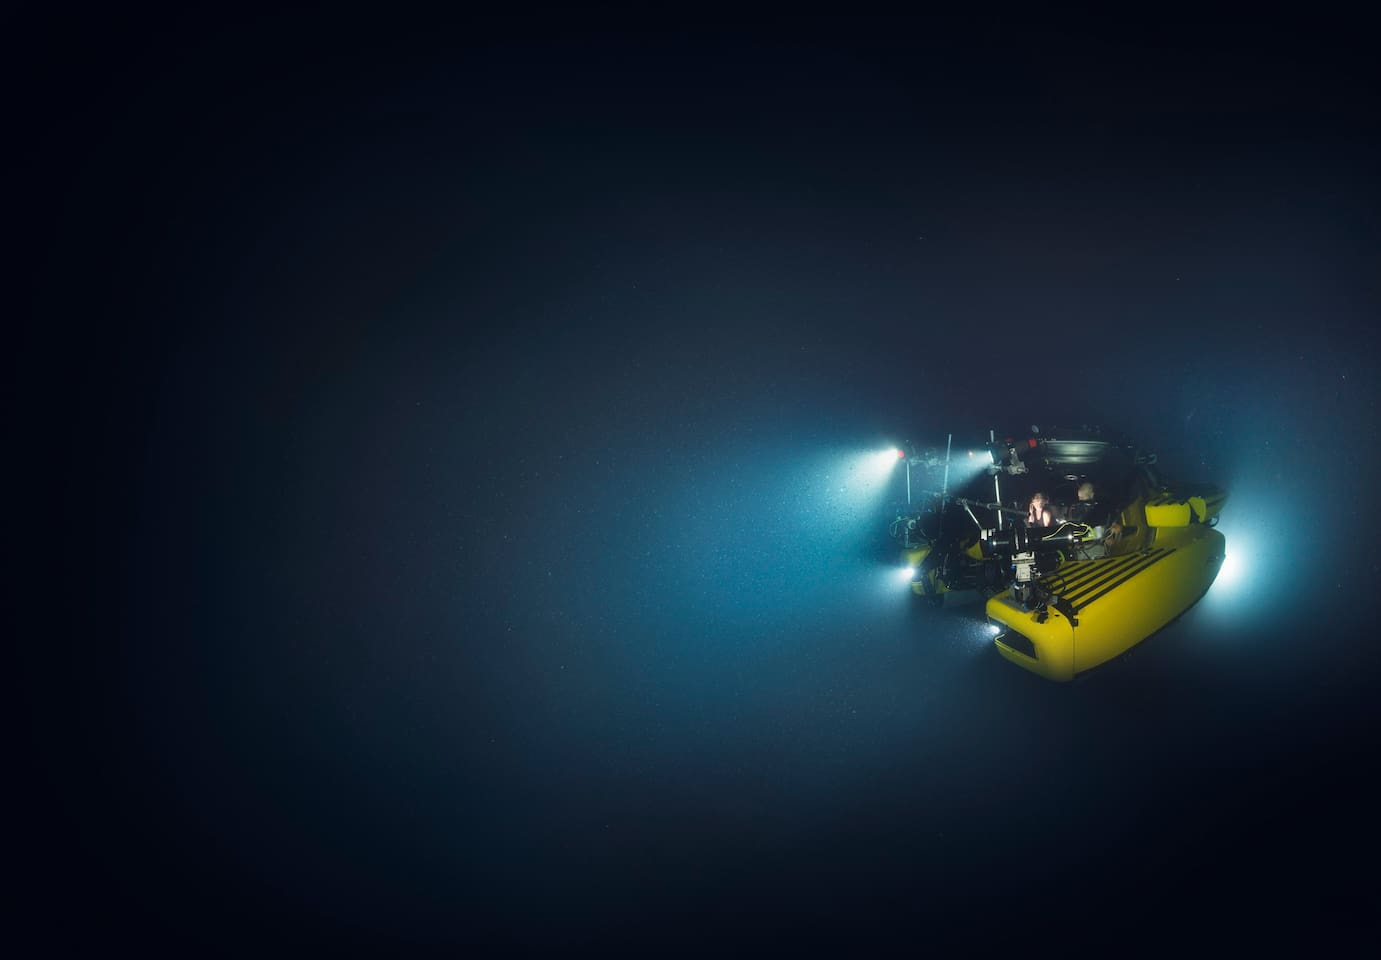 Dive into the unknown on an active research mission aboard the TRITON 3300/3, one of two well-equipped marine science submersibles. Photo © 2017 Luis Lamar